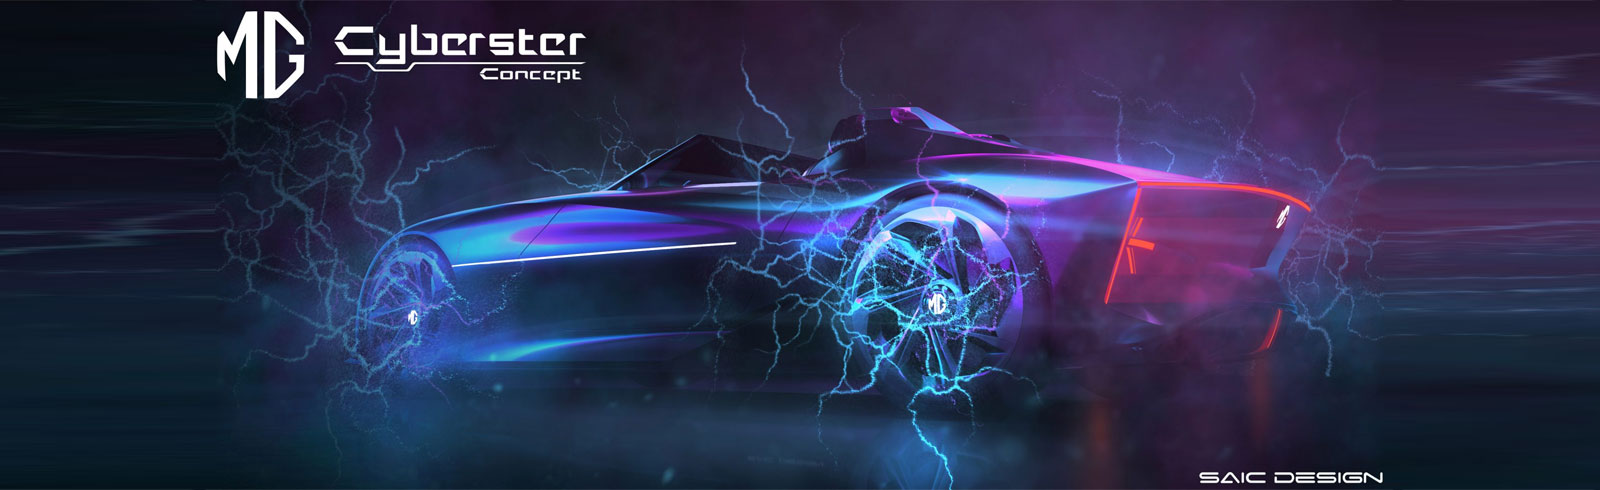 SAIC Motor which owns MG teases the MG Cyberster Concept - an all-electric roadster